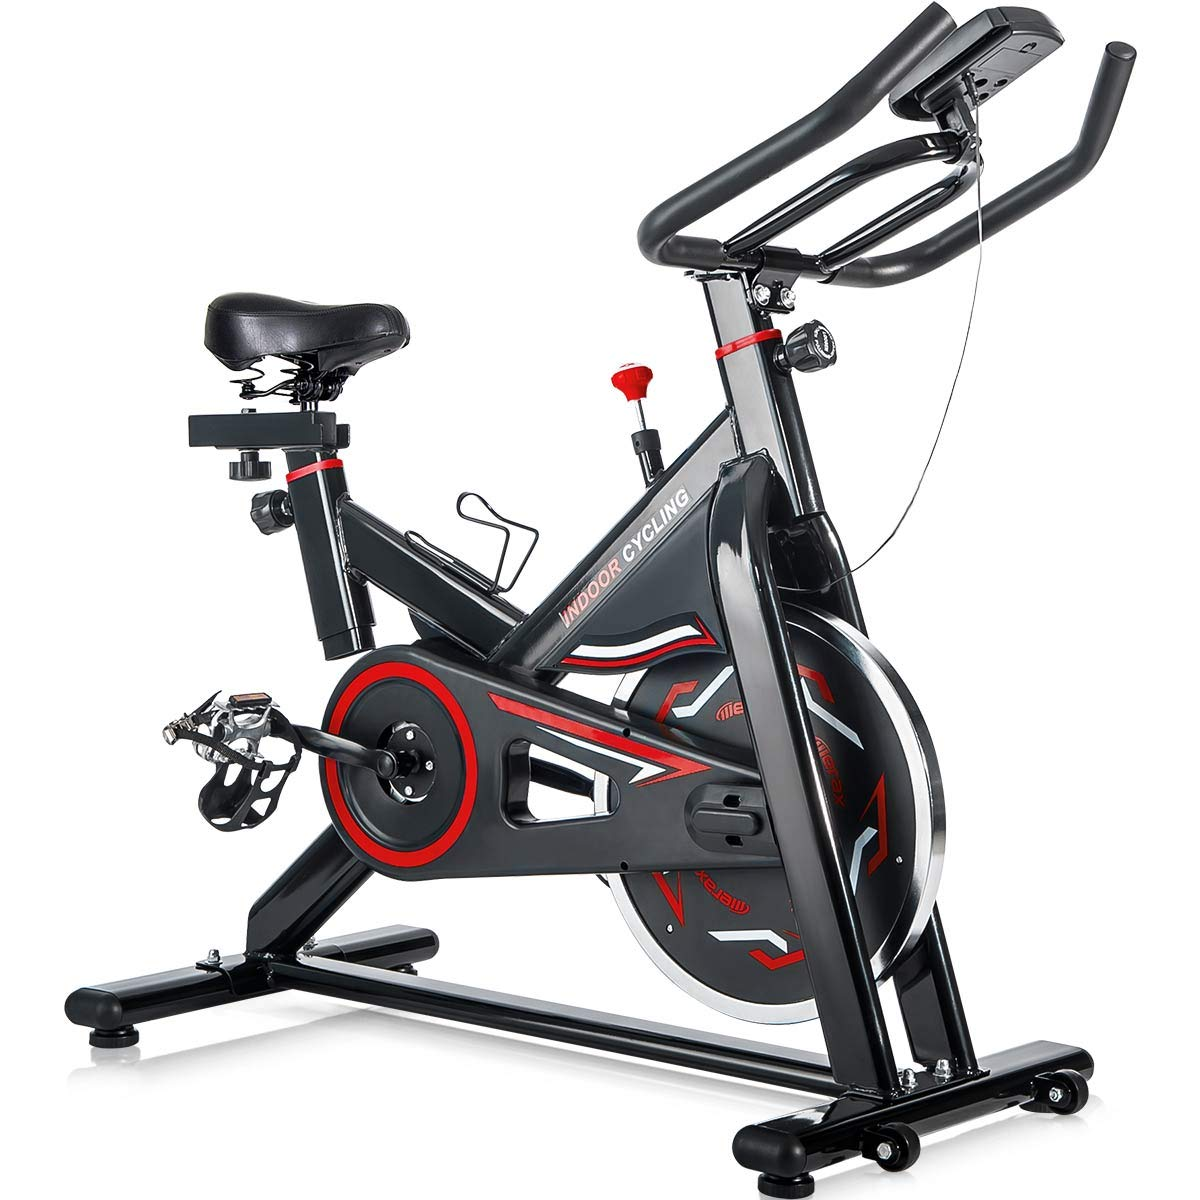 Merax Deluxe Indoor Cycling Bike Cycle Trainer Exercise Bicycle (Black & Red)